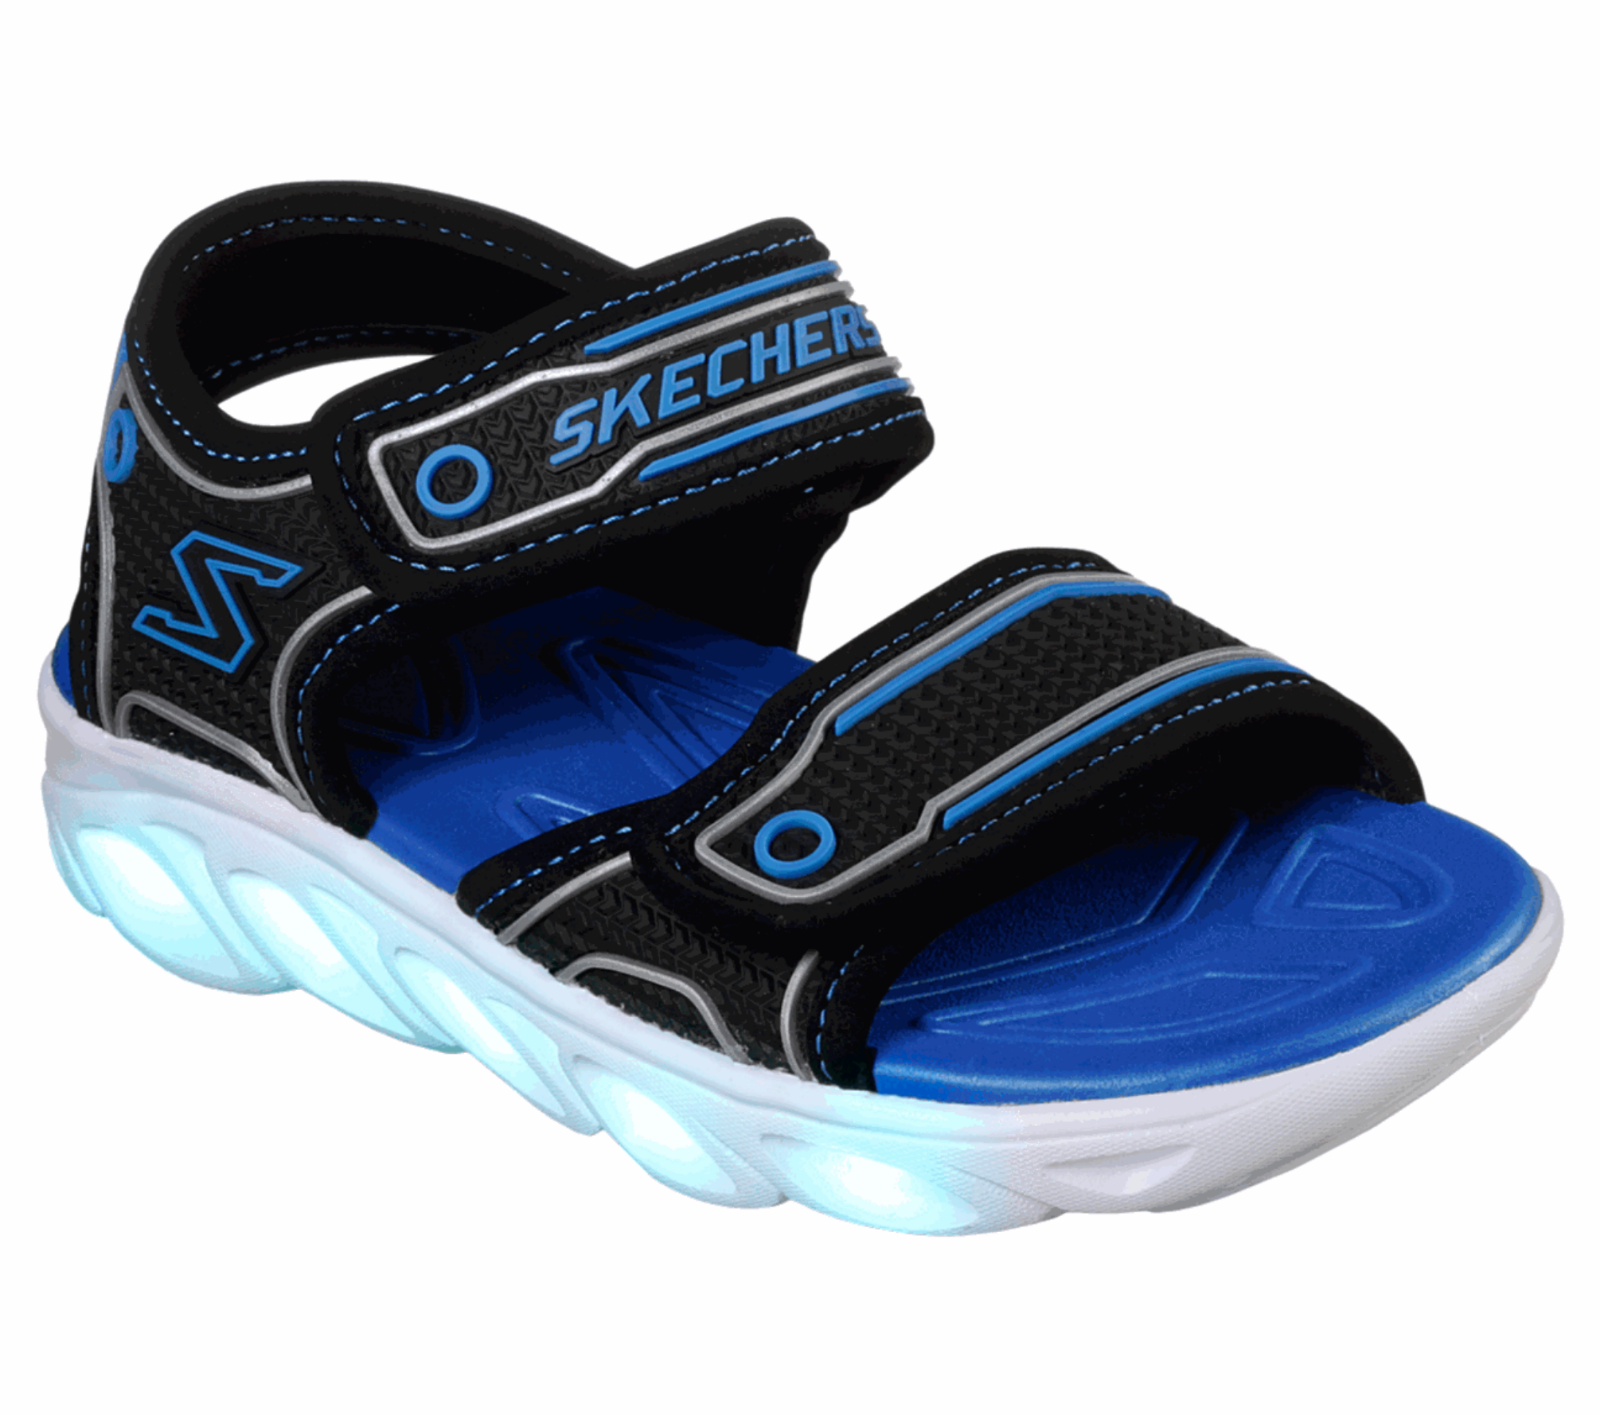 light up sandals for toddlers